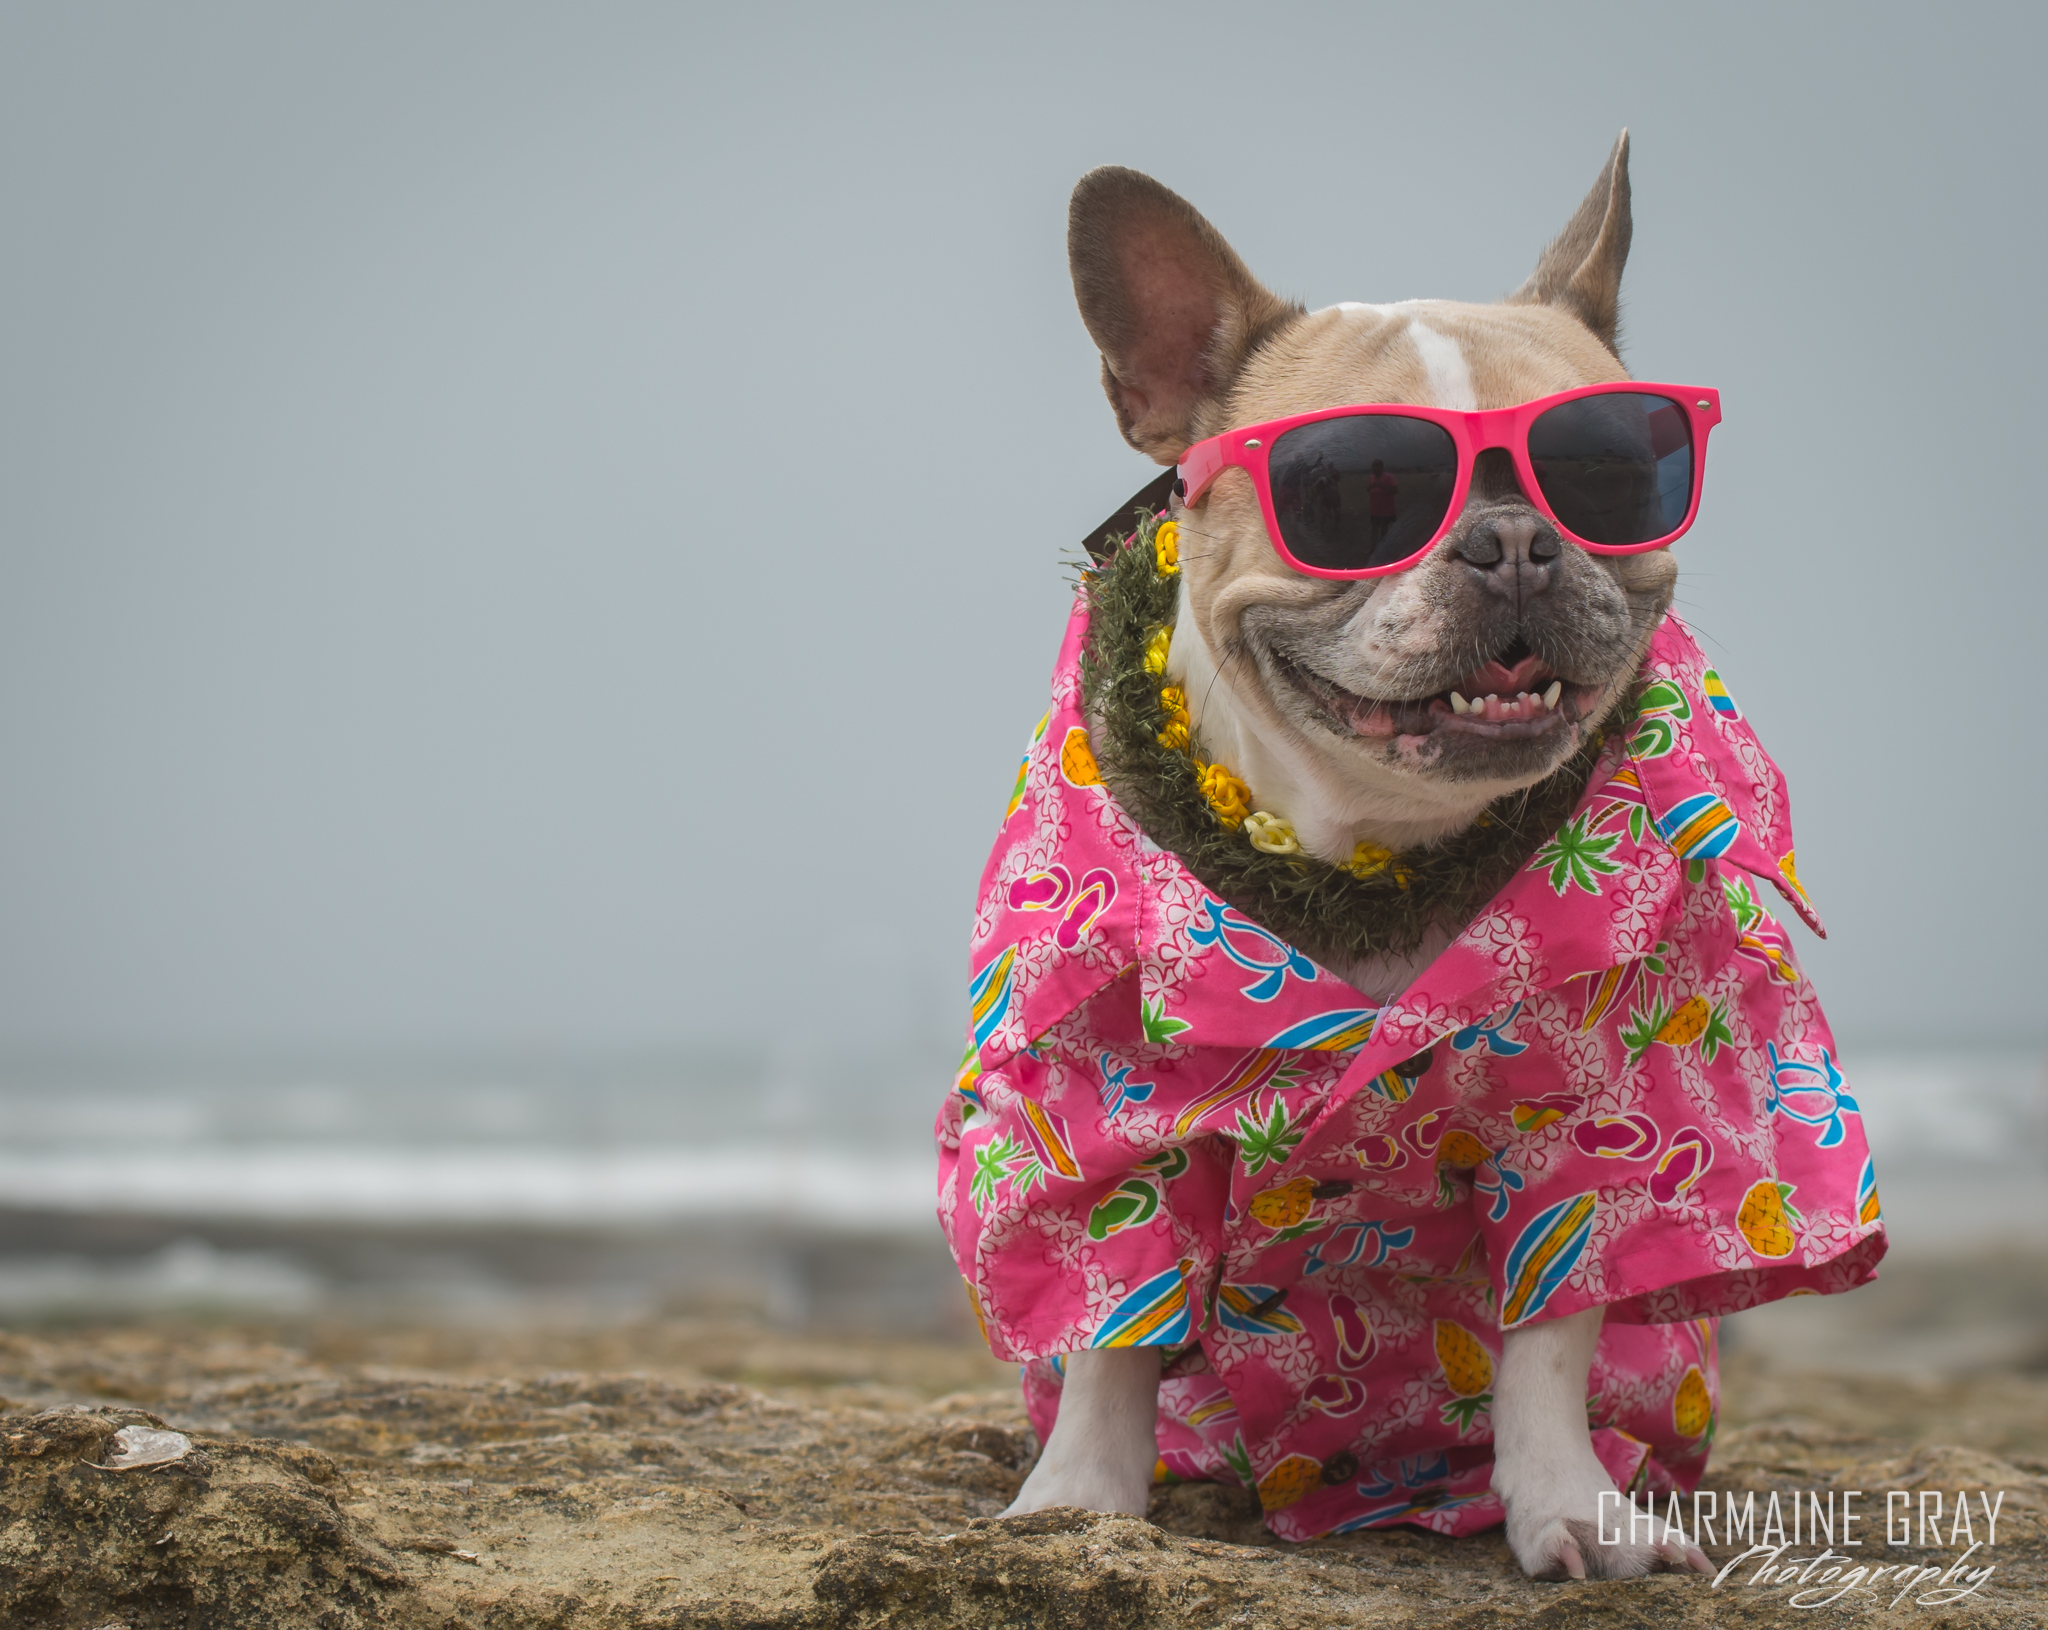 pet photographer, pet photography, pet portrait, pet, animal, charmaine gray photography, charmaine gray pet photography, san diego,dog,canine,california,surf,surfing,frenchie, french bulldog, cherie